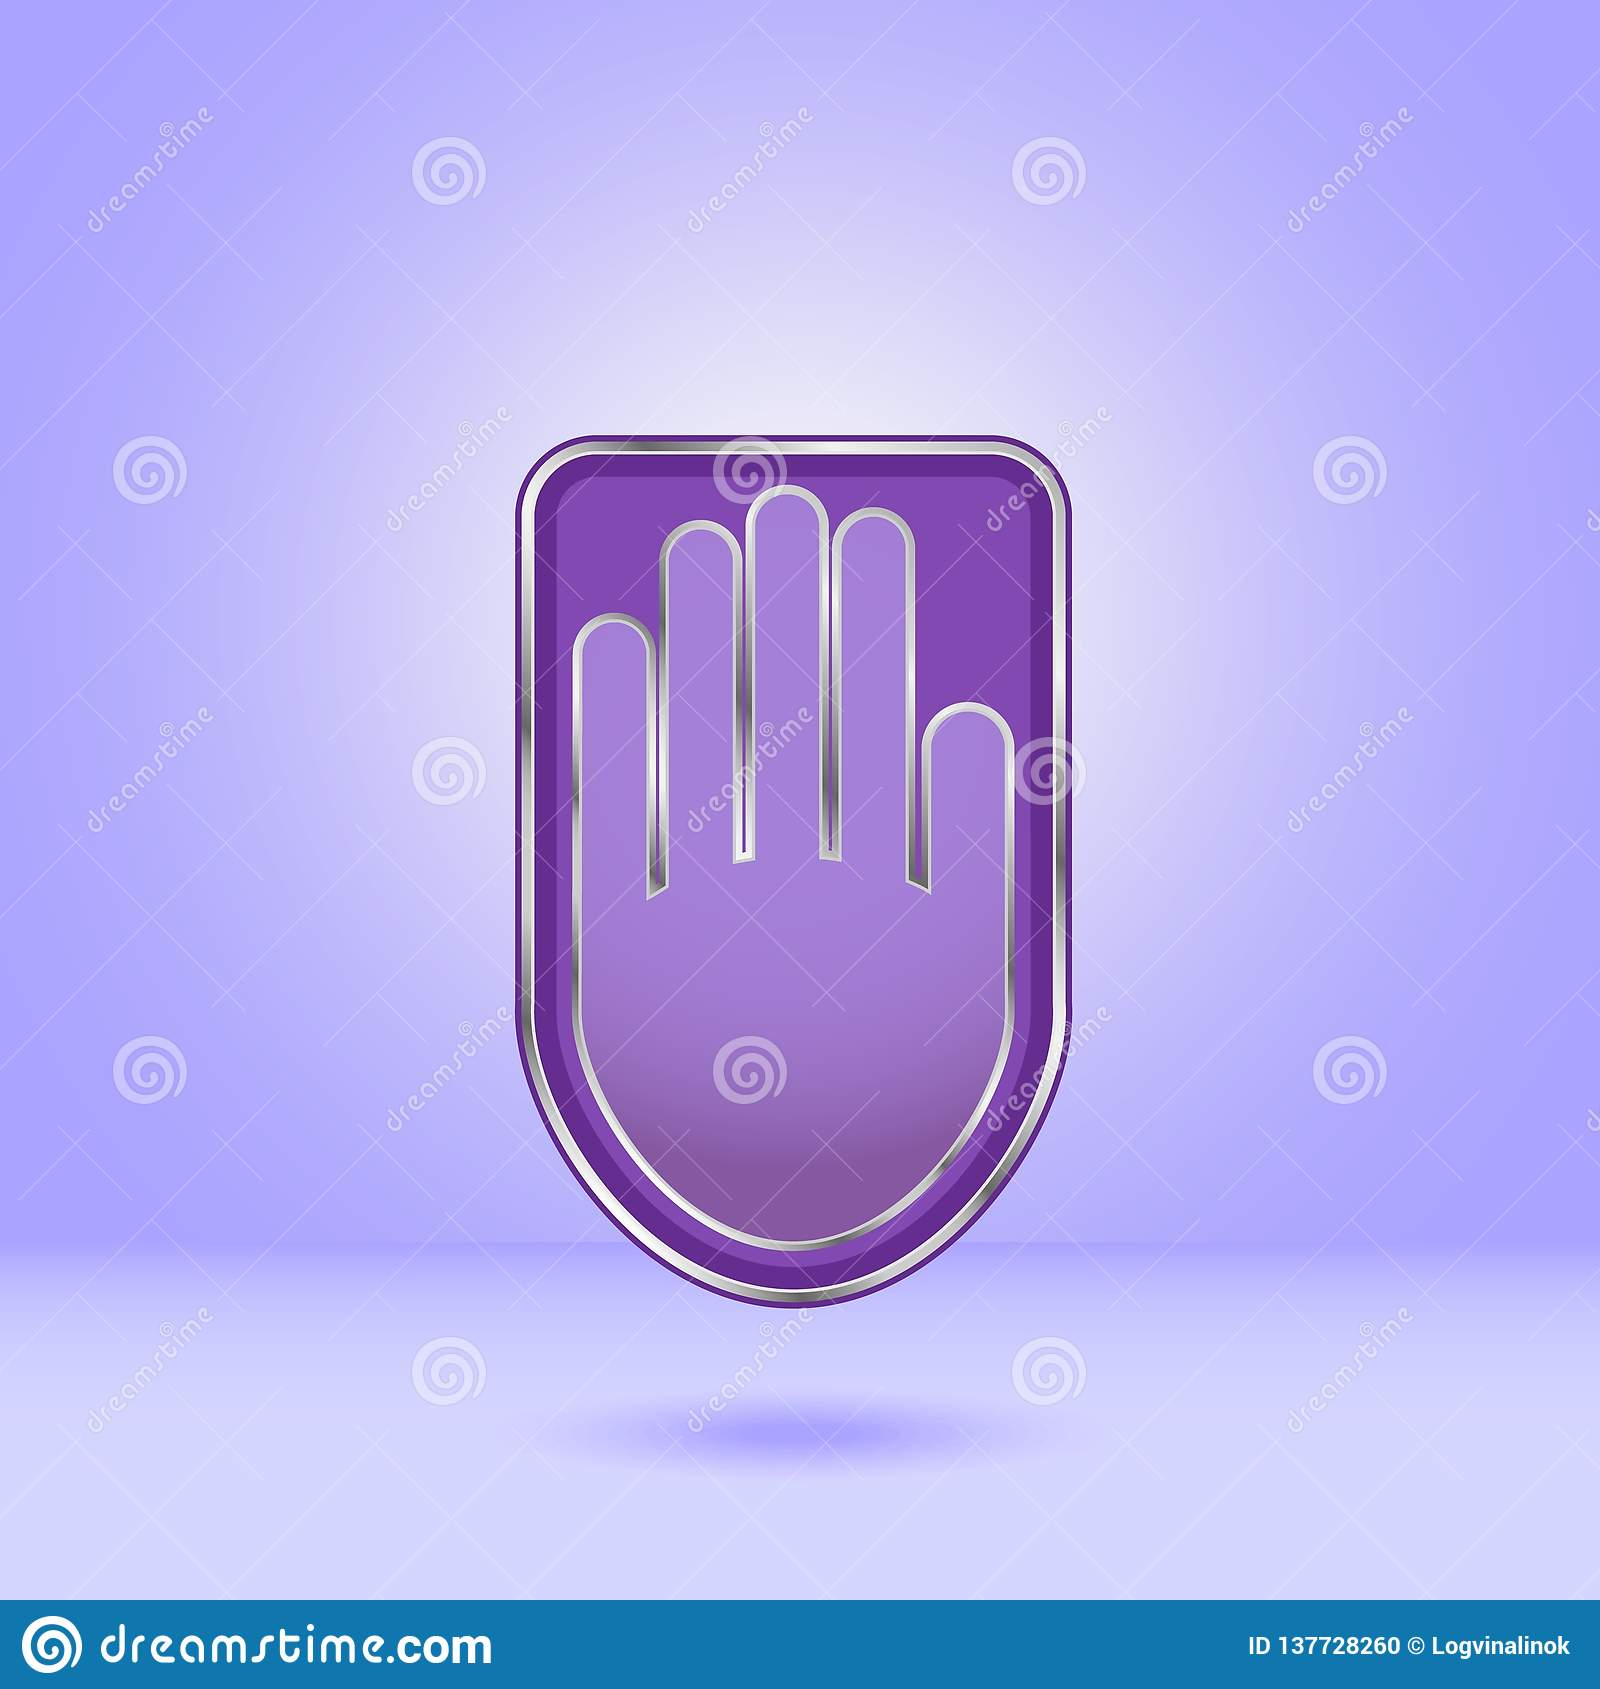 Purple hand icon with metal edging